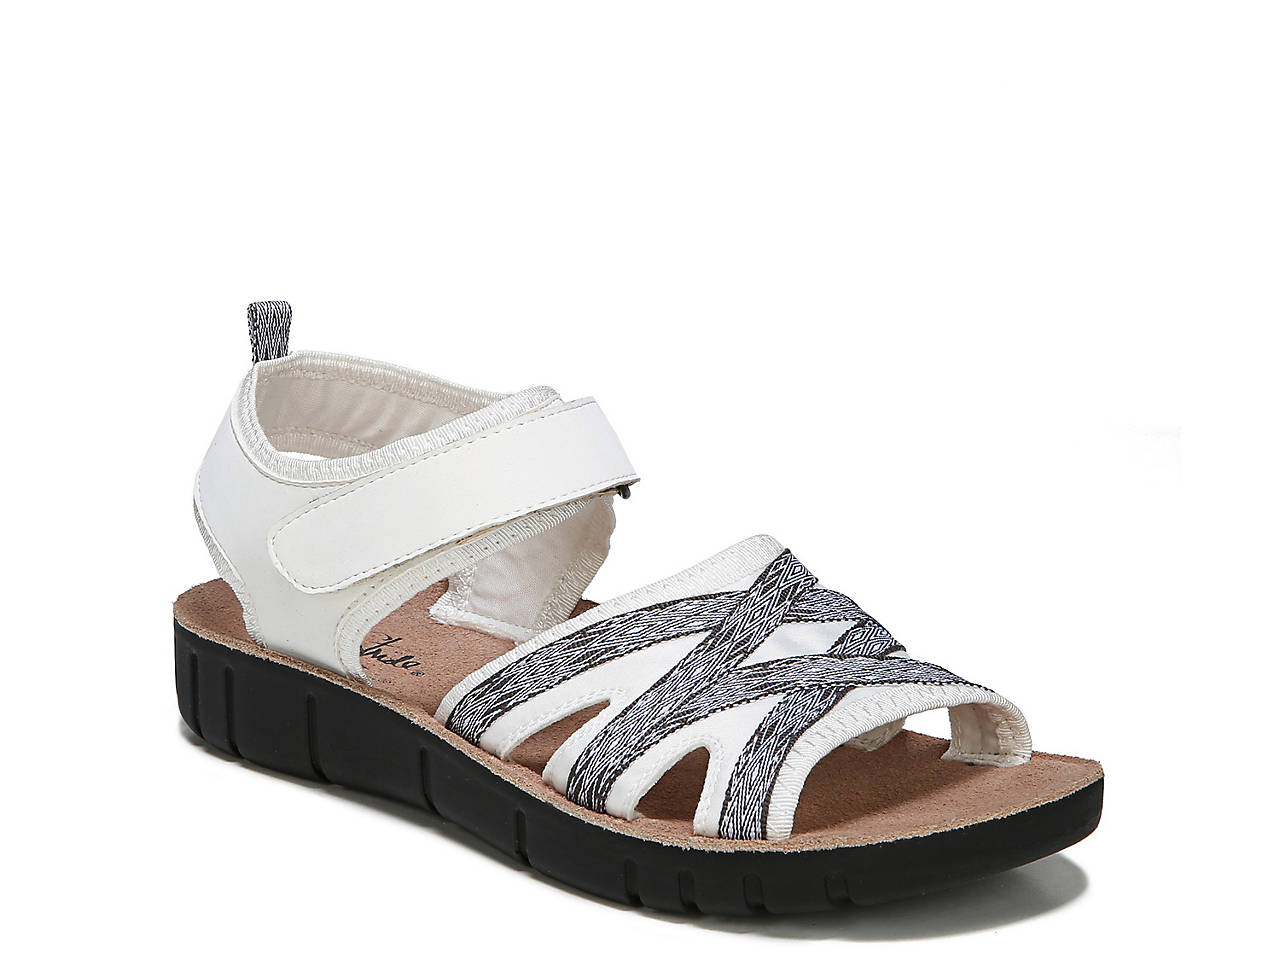 8b36dadab3 LifeStride Juno Sandal Women's Shoes | DSW